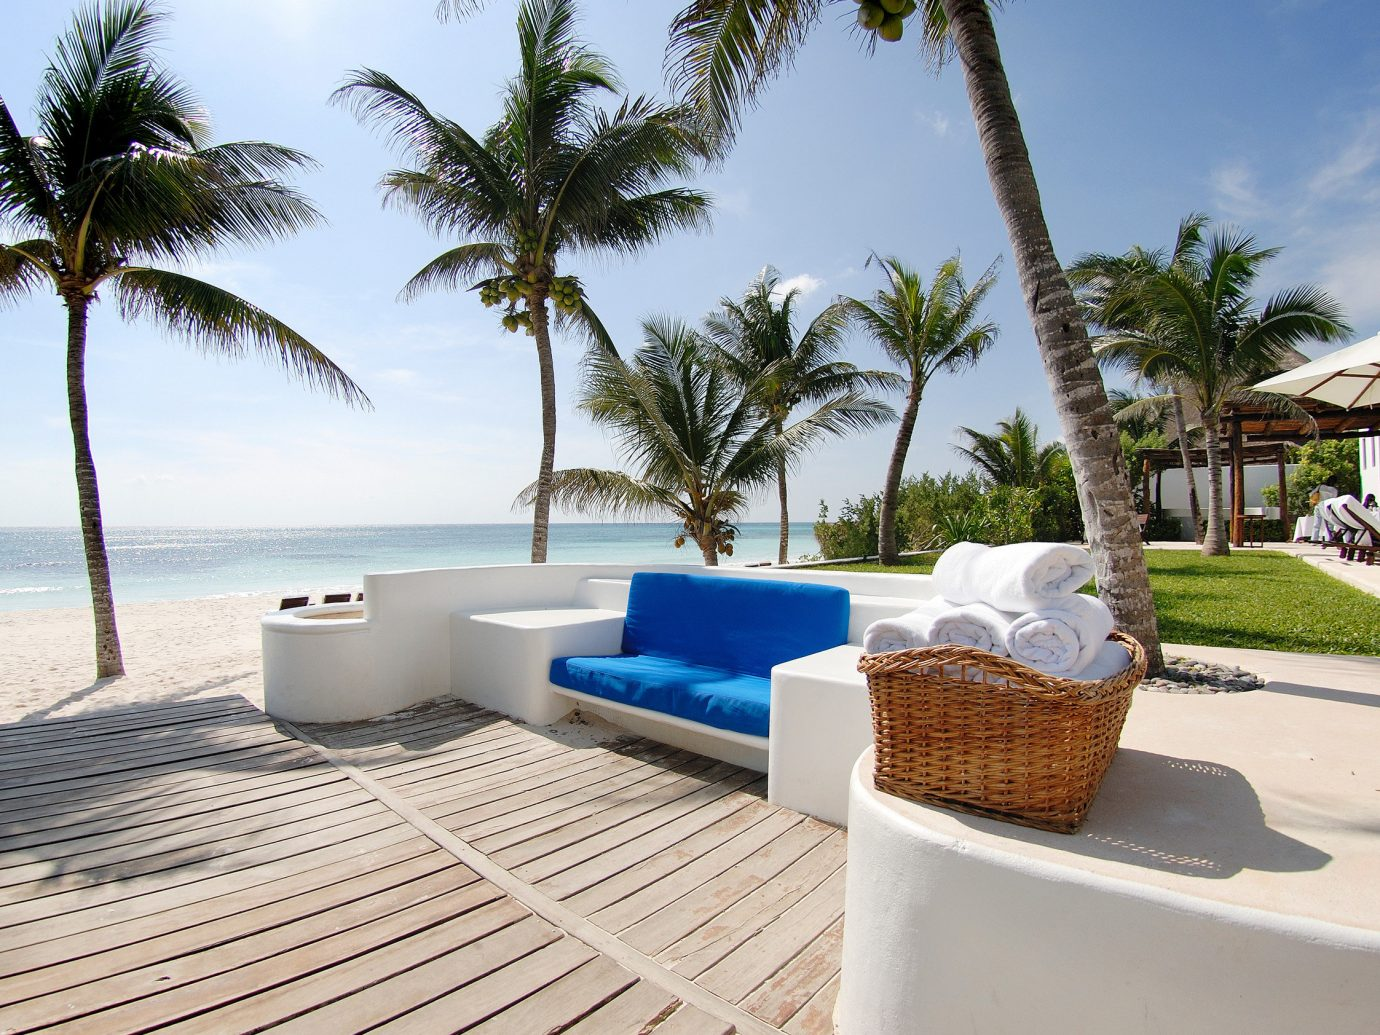 Boutique Hotels Hotels Mexico Romance Tulum sky tree outdoor property vacation Resort palm Beach caribbean swimming pool estate Villa arecales home Sea real estate condominium plant furniture